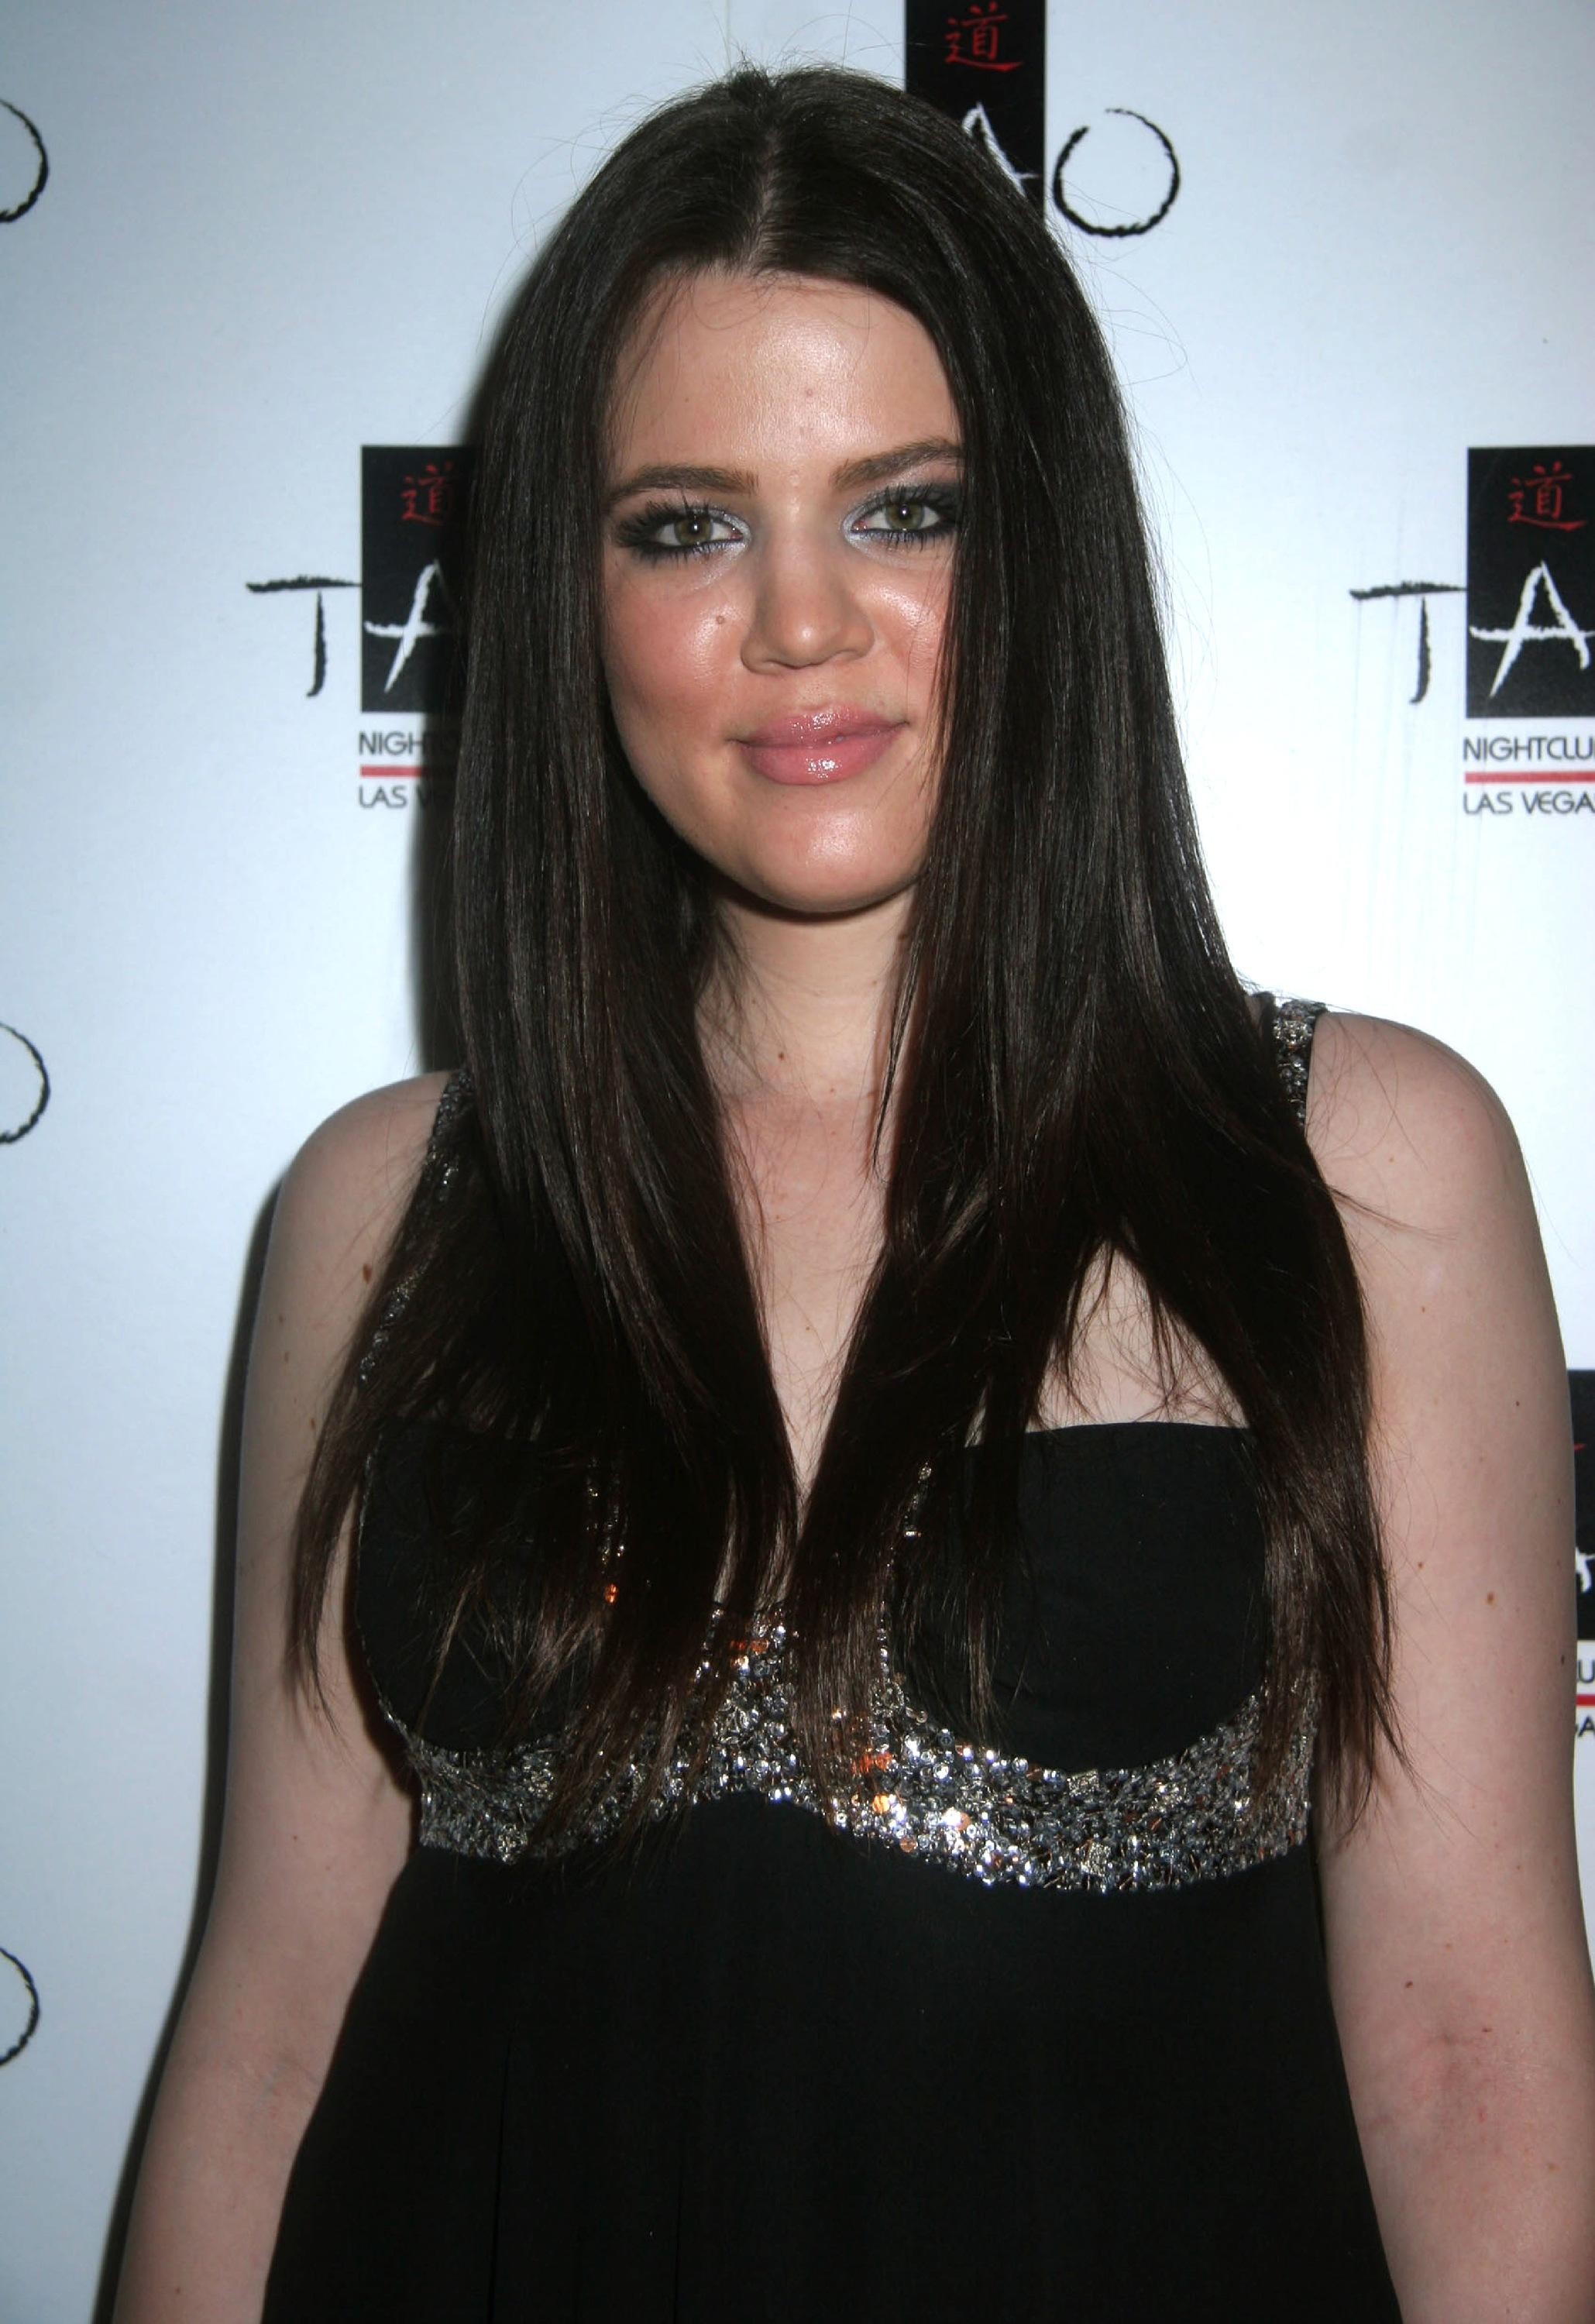 khloe kardashian - photo #44